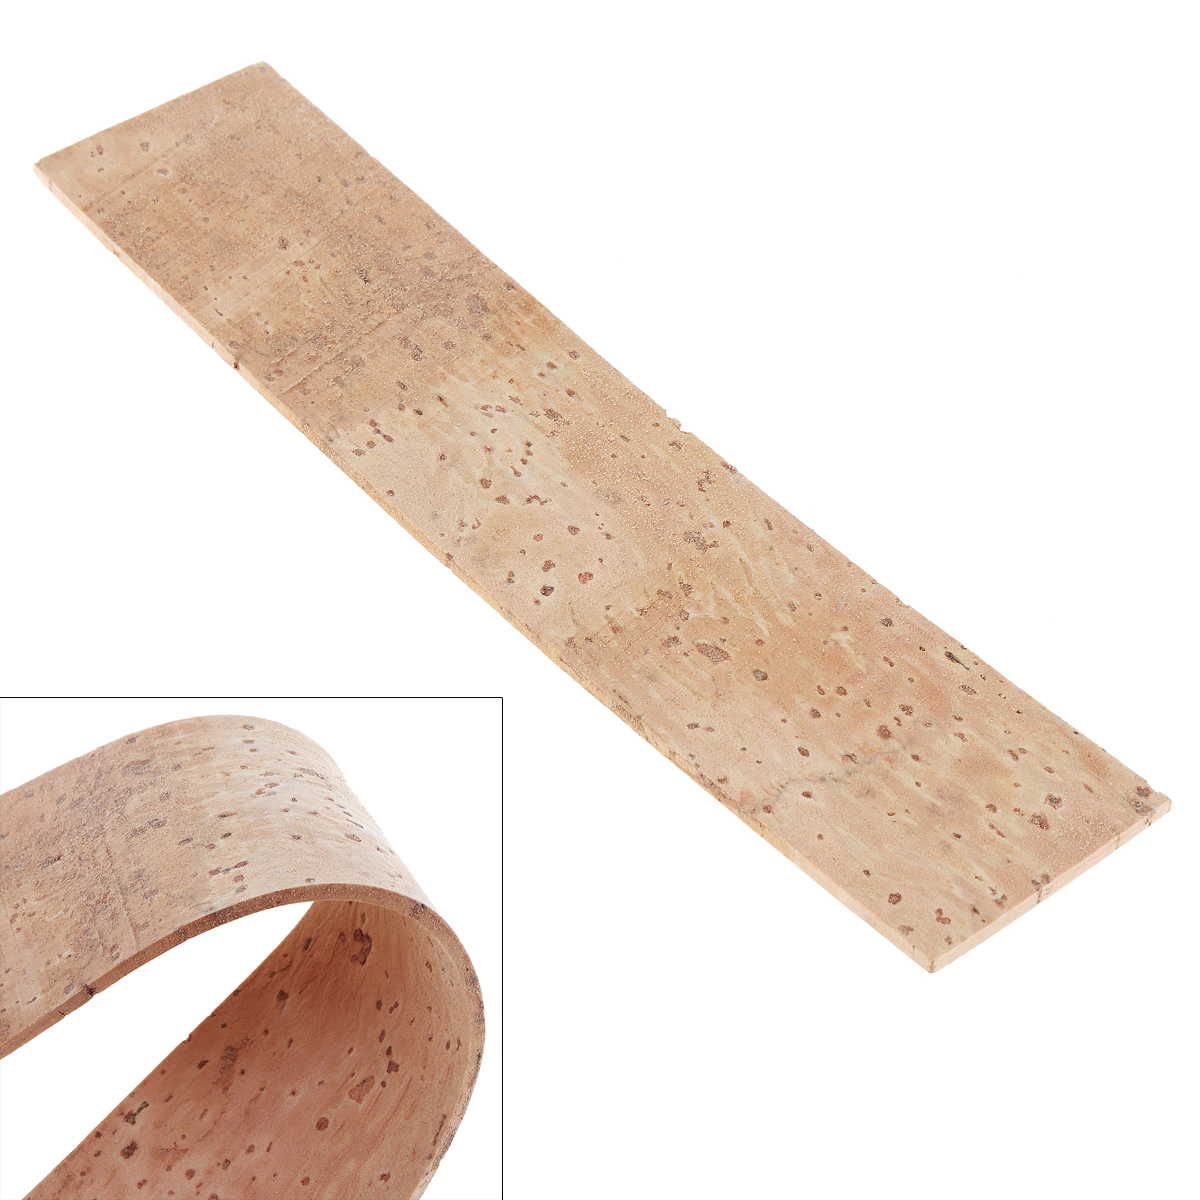 New 135 X 30mm Natural Cork Bassoon Mouth Neck Tube Woodwind Instrument Repair Accessories